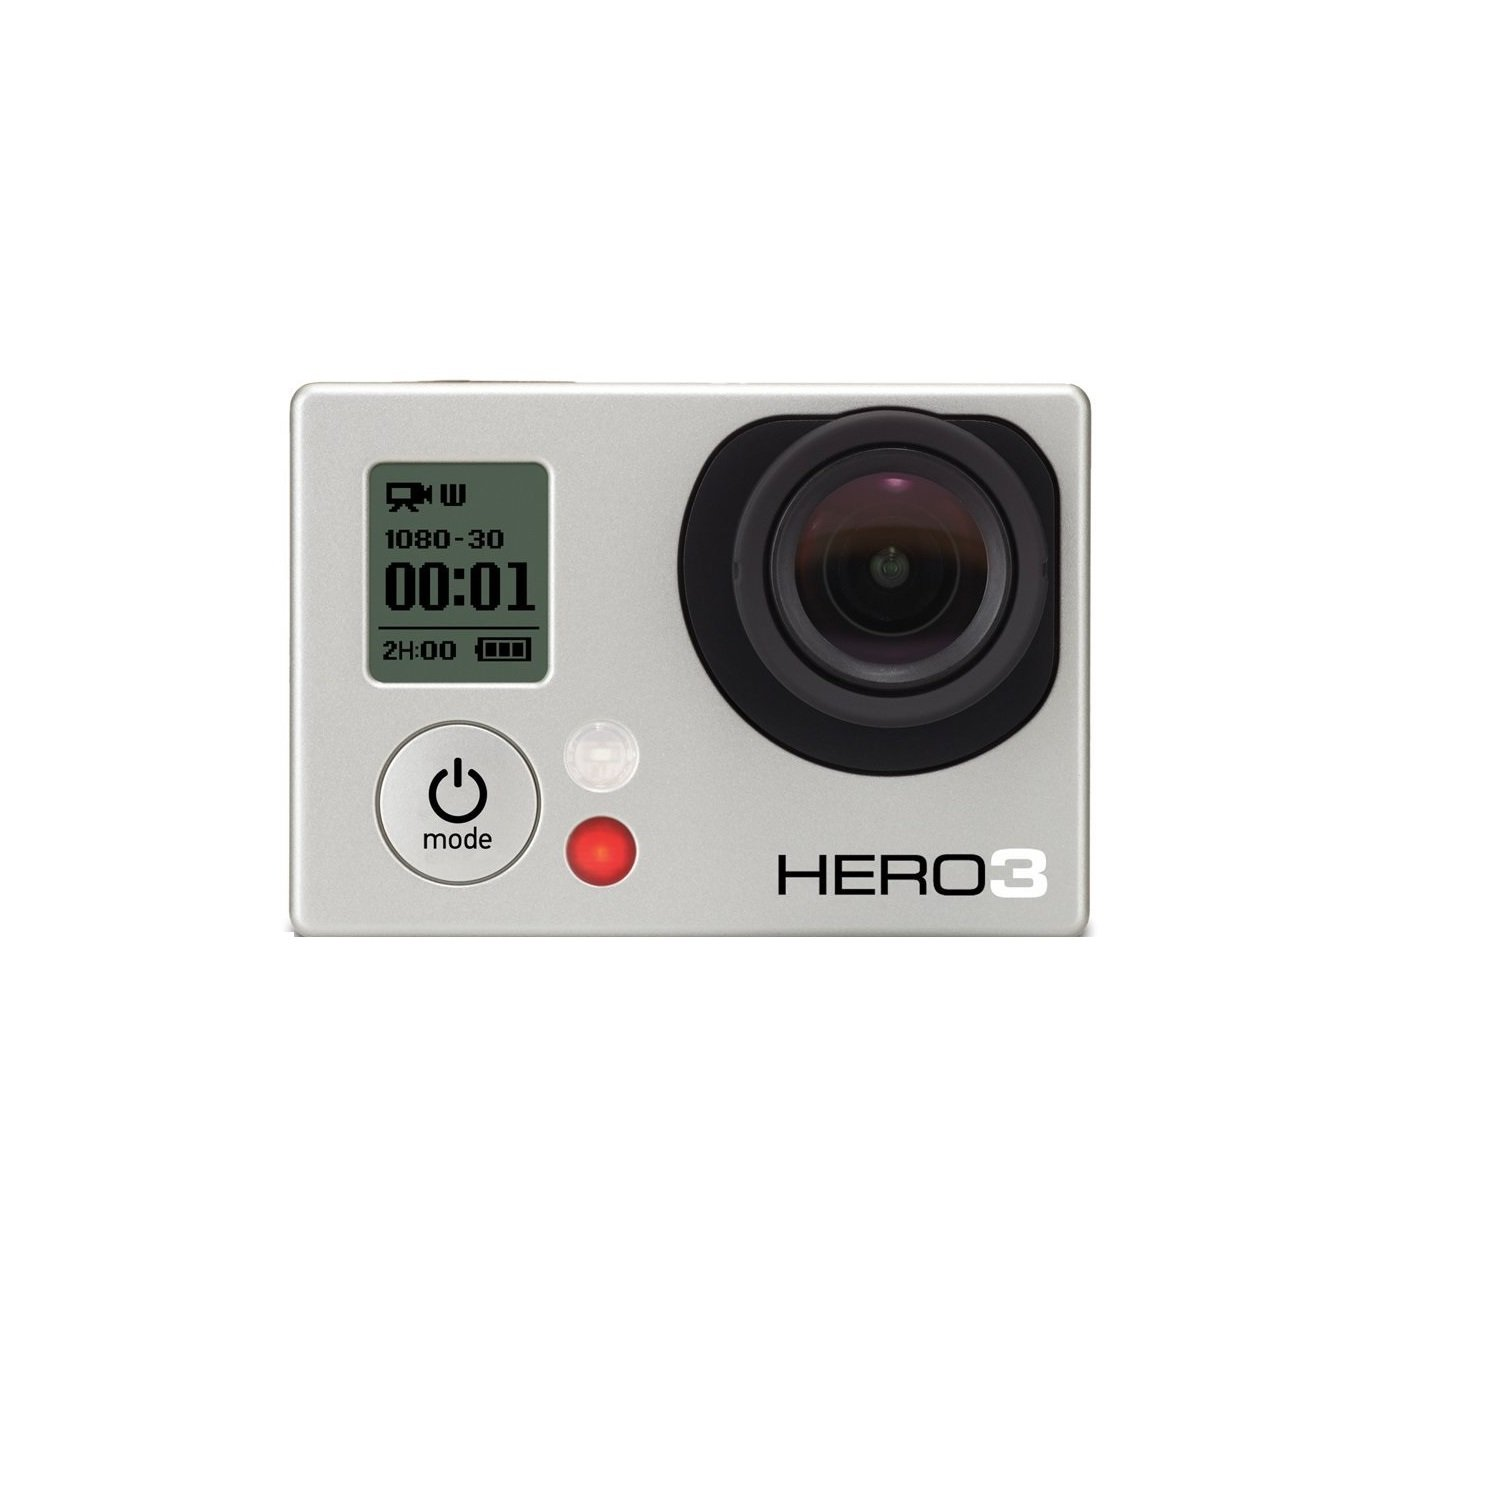 Amazon.com : GoPro HERO3: White Edition - (197'/ 60m Waterproof Housing) : Go  Pro : Camera & Photo